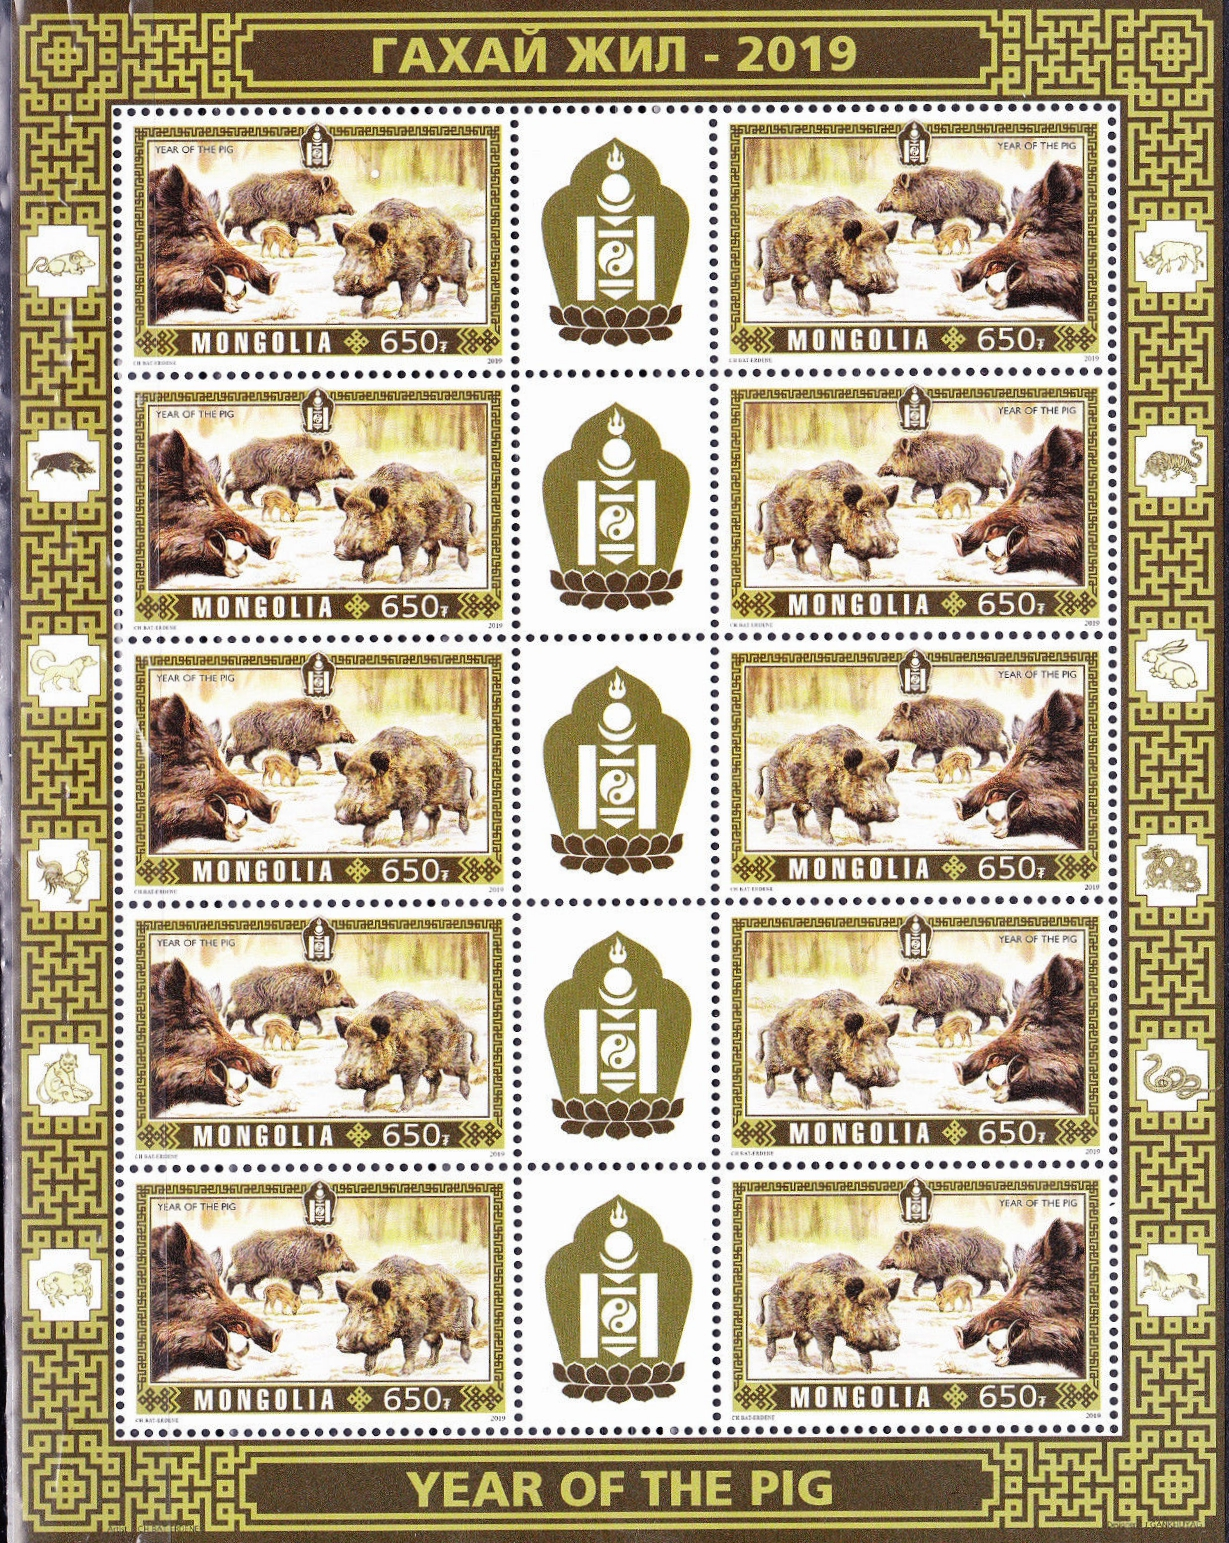 Mongolia - Year of the Pig (January 4, 2019) sheet of 10